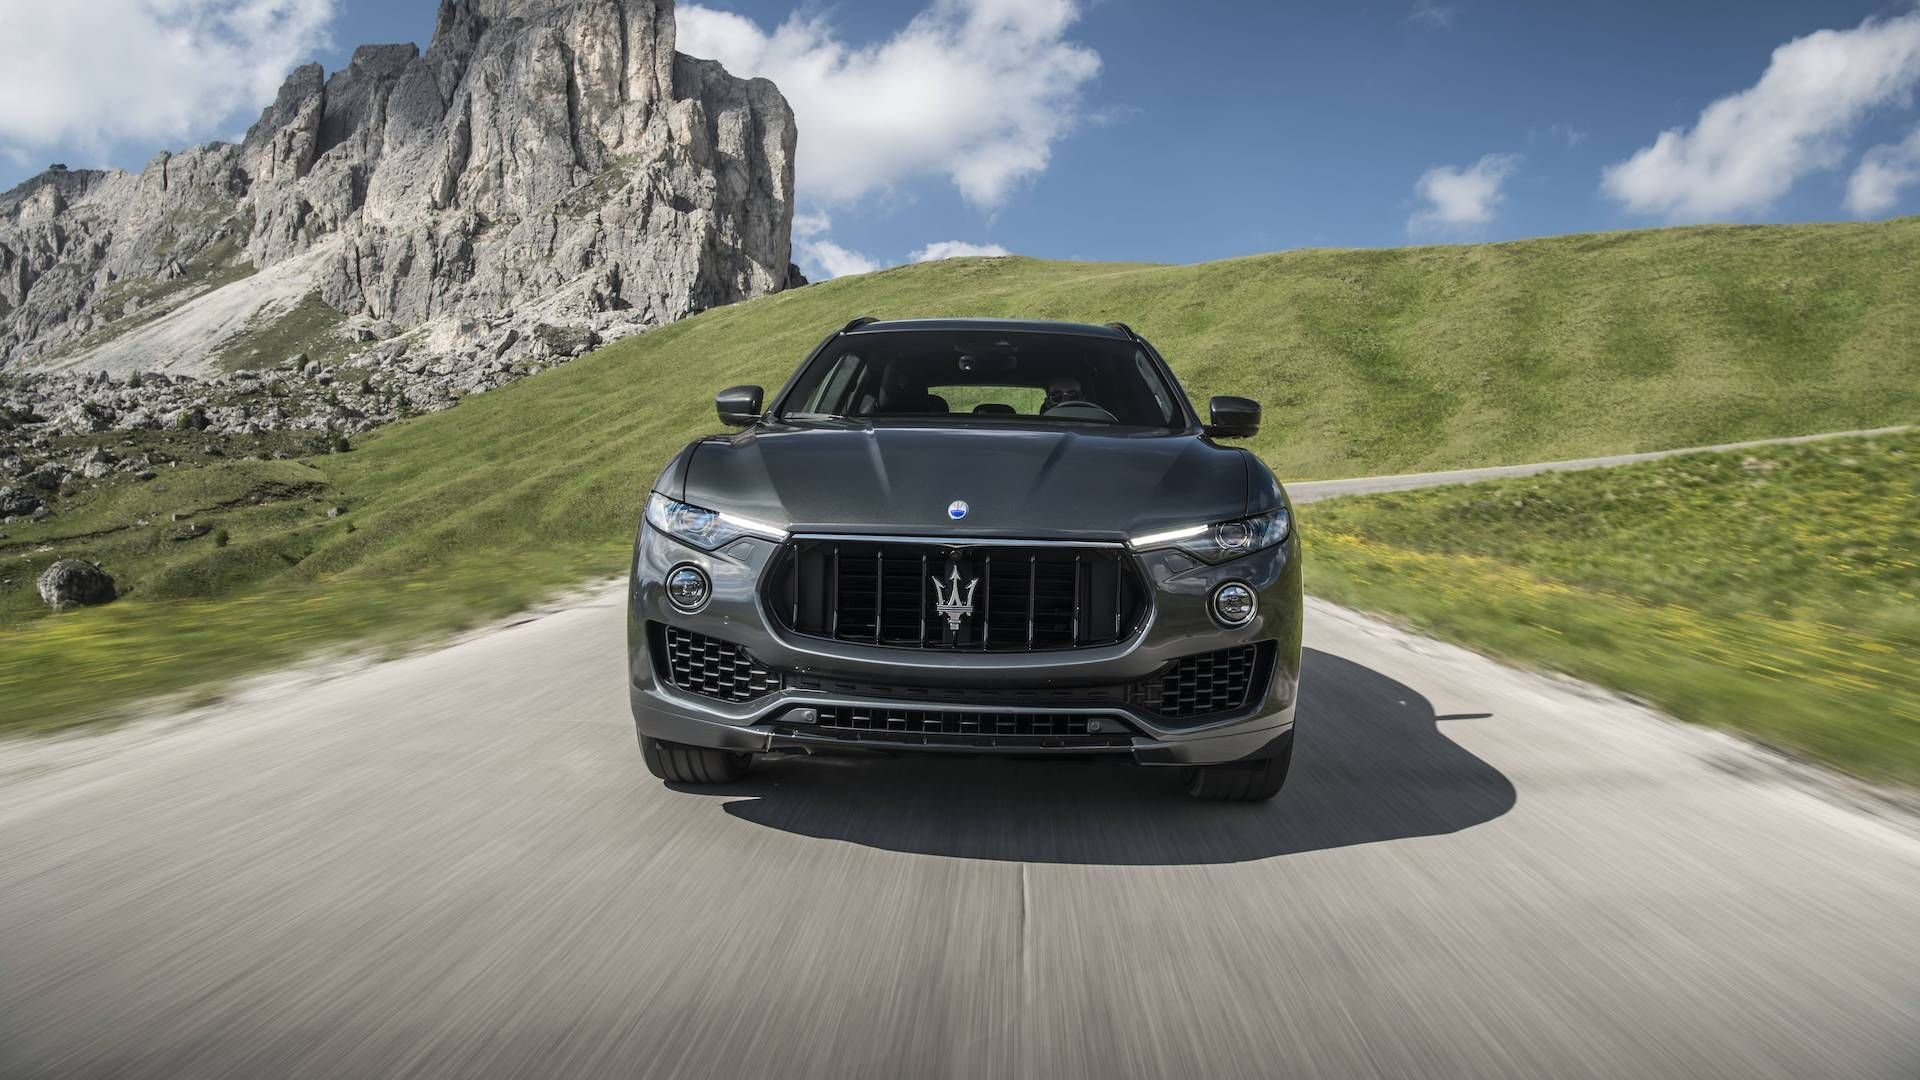 closeup frontal image of a 2018 maserati levante gransport suv